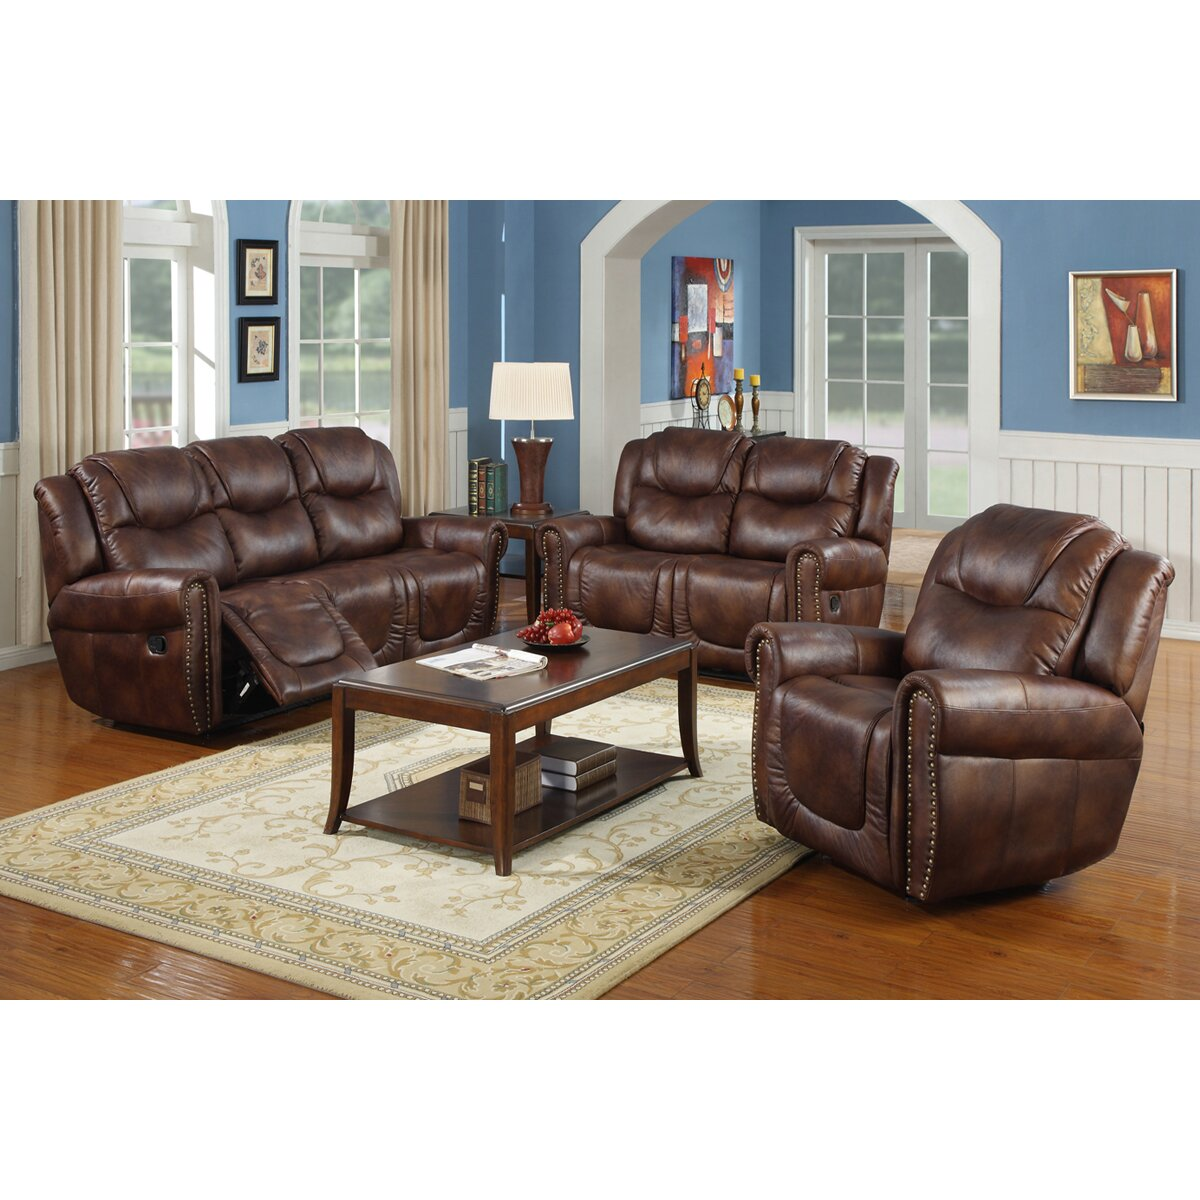 Beverly fine furniture toledo 3 piece bonded leather for 3 piece living room furniture set